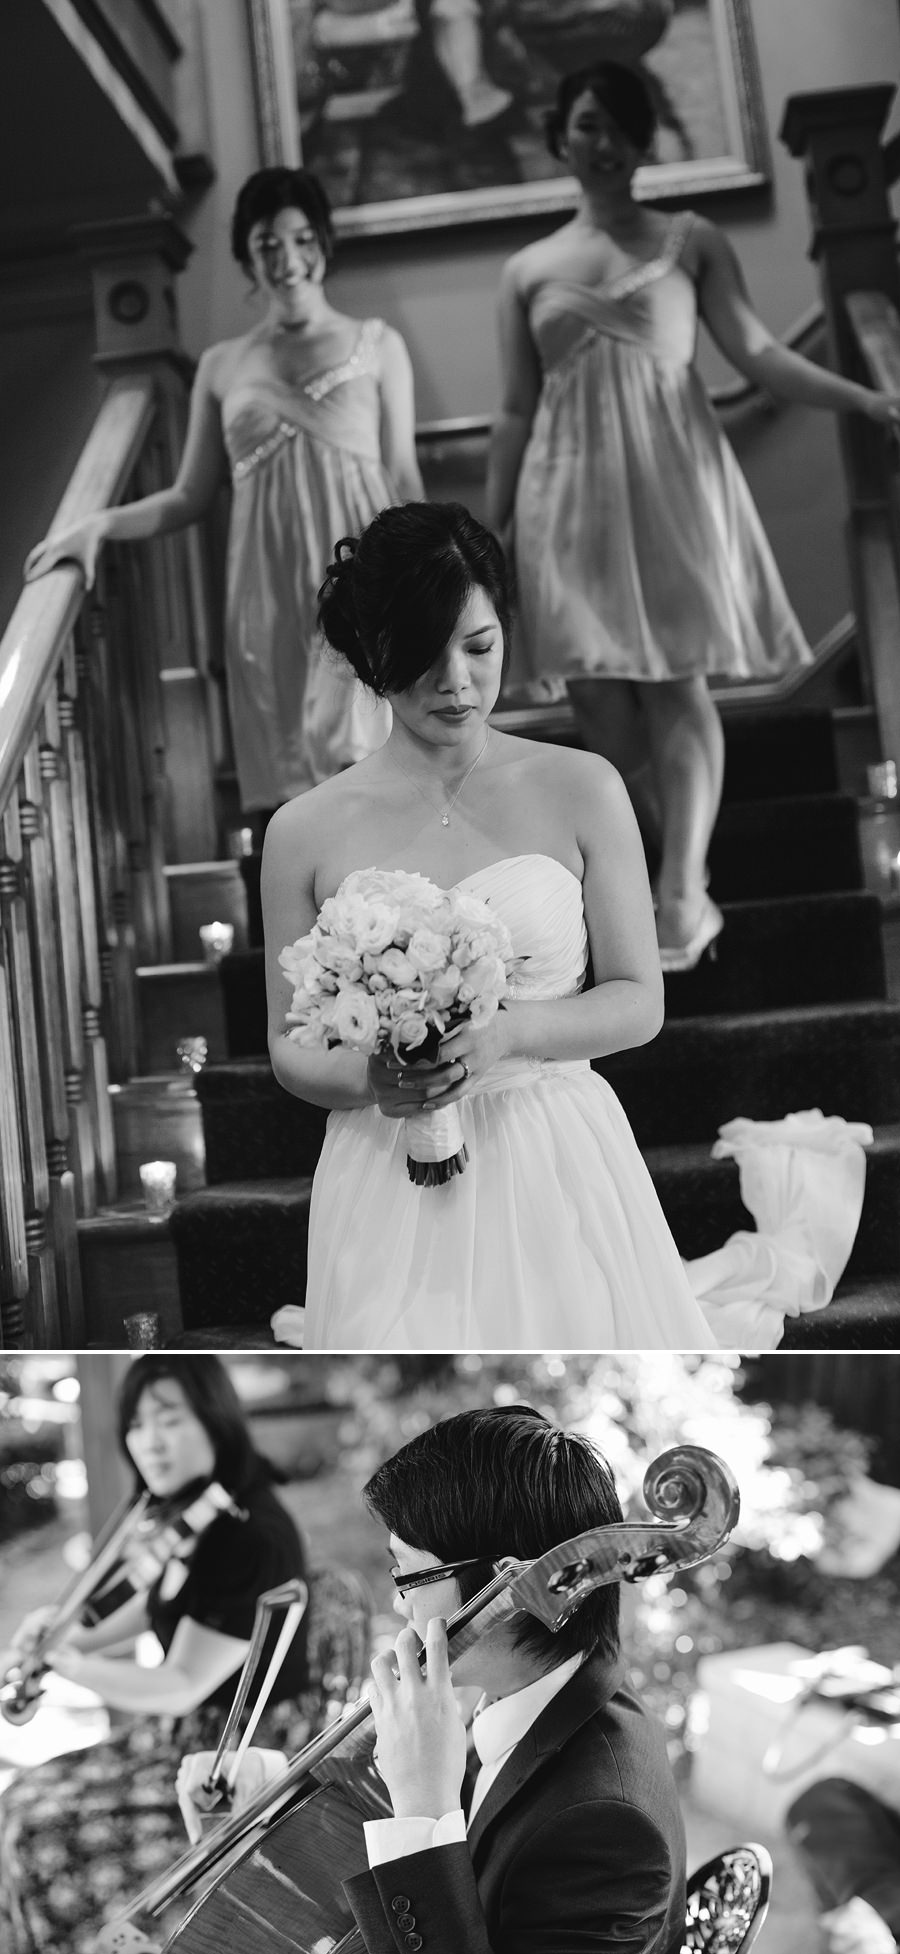 Peakurst Wedding Photographers: Bride walking down stairs